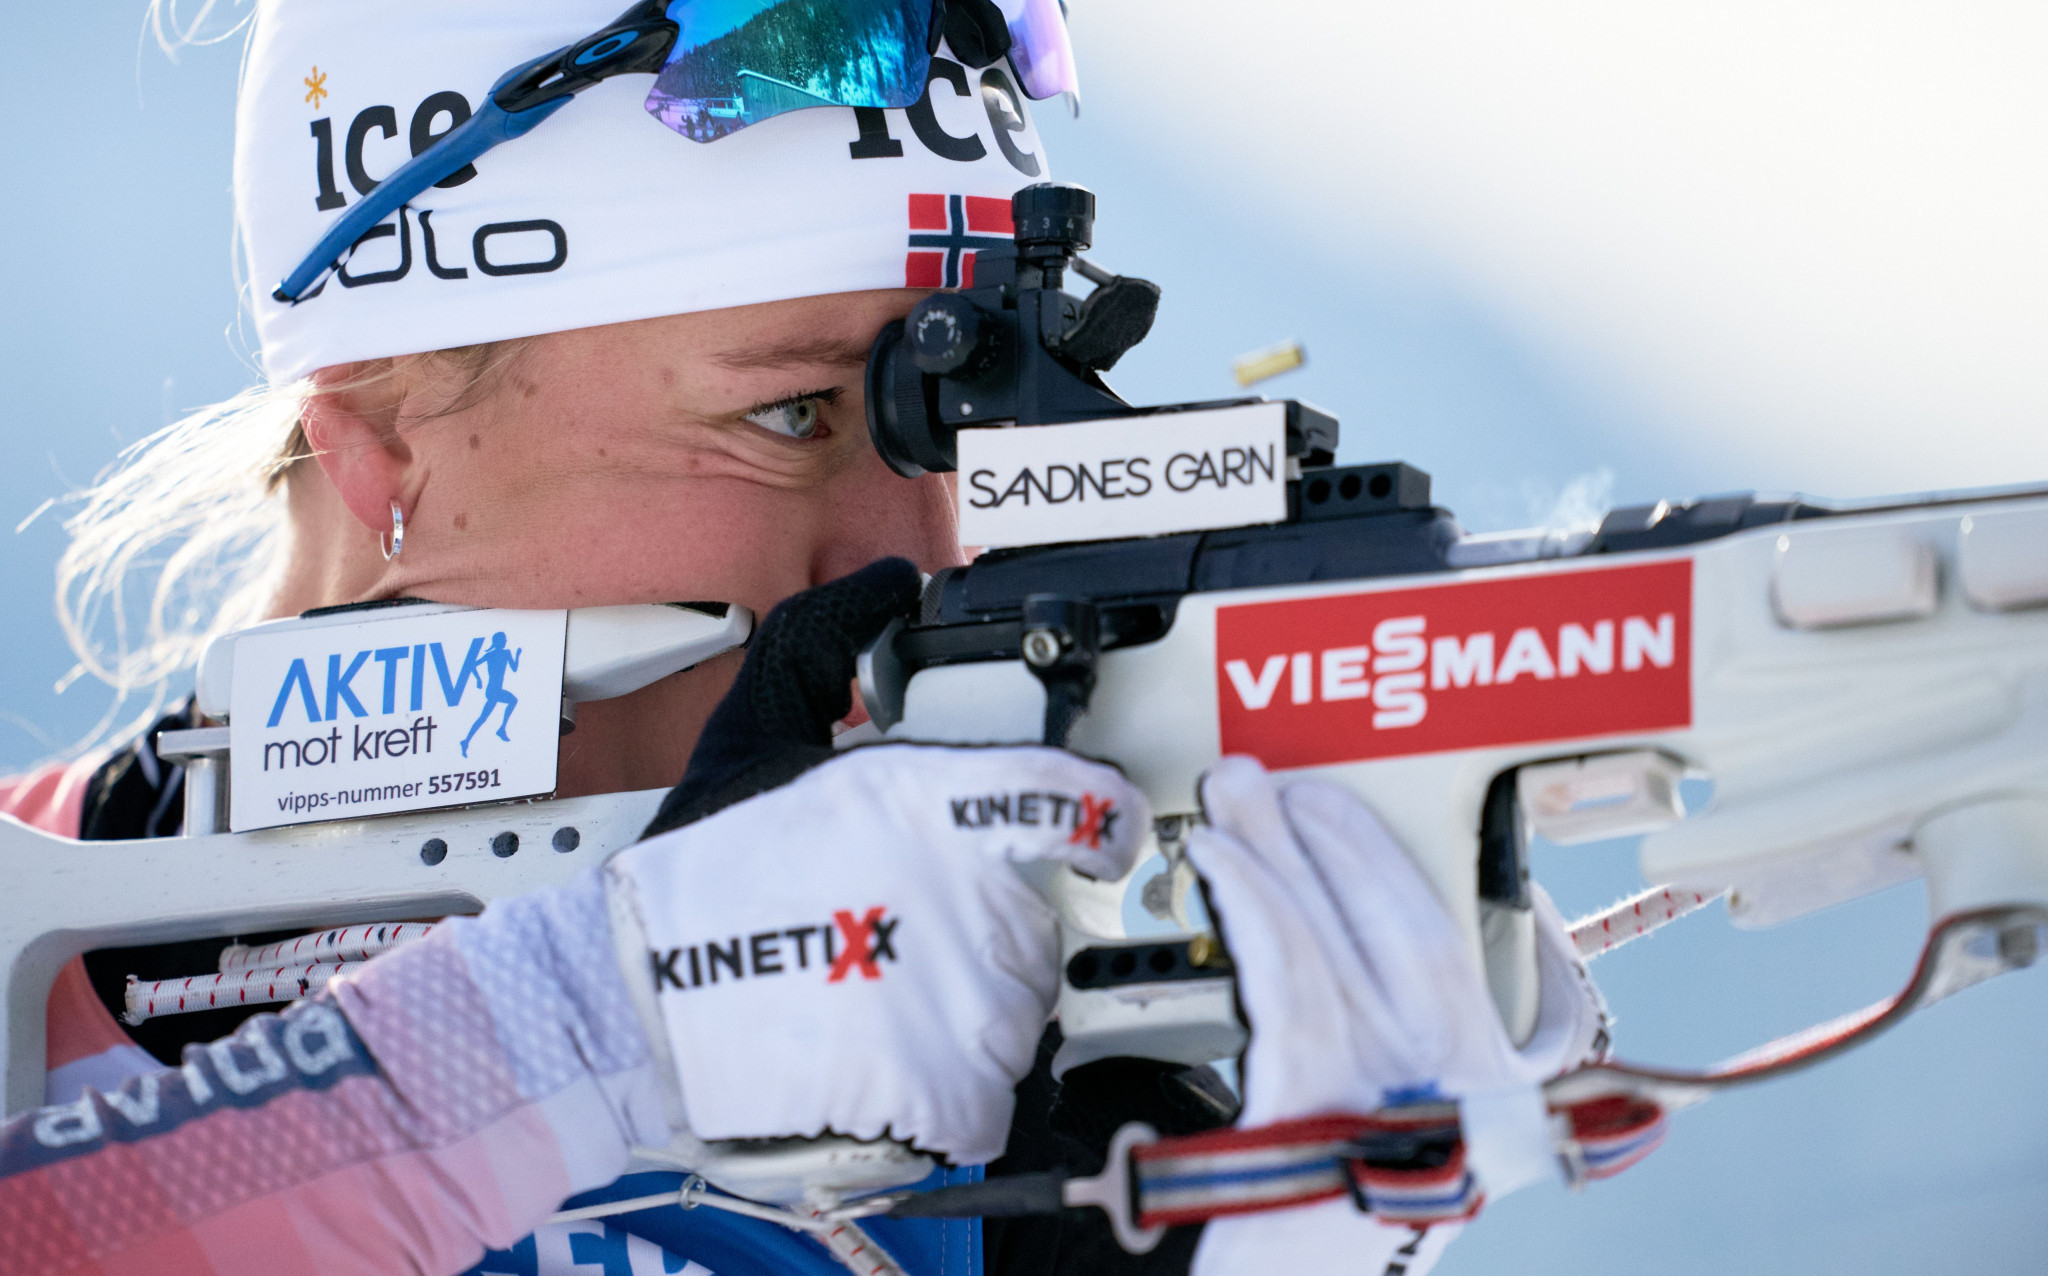 Perfect shooting propels Eckhoff to first pursuit victory at IBU World Cup